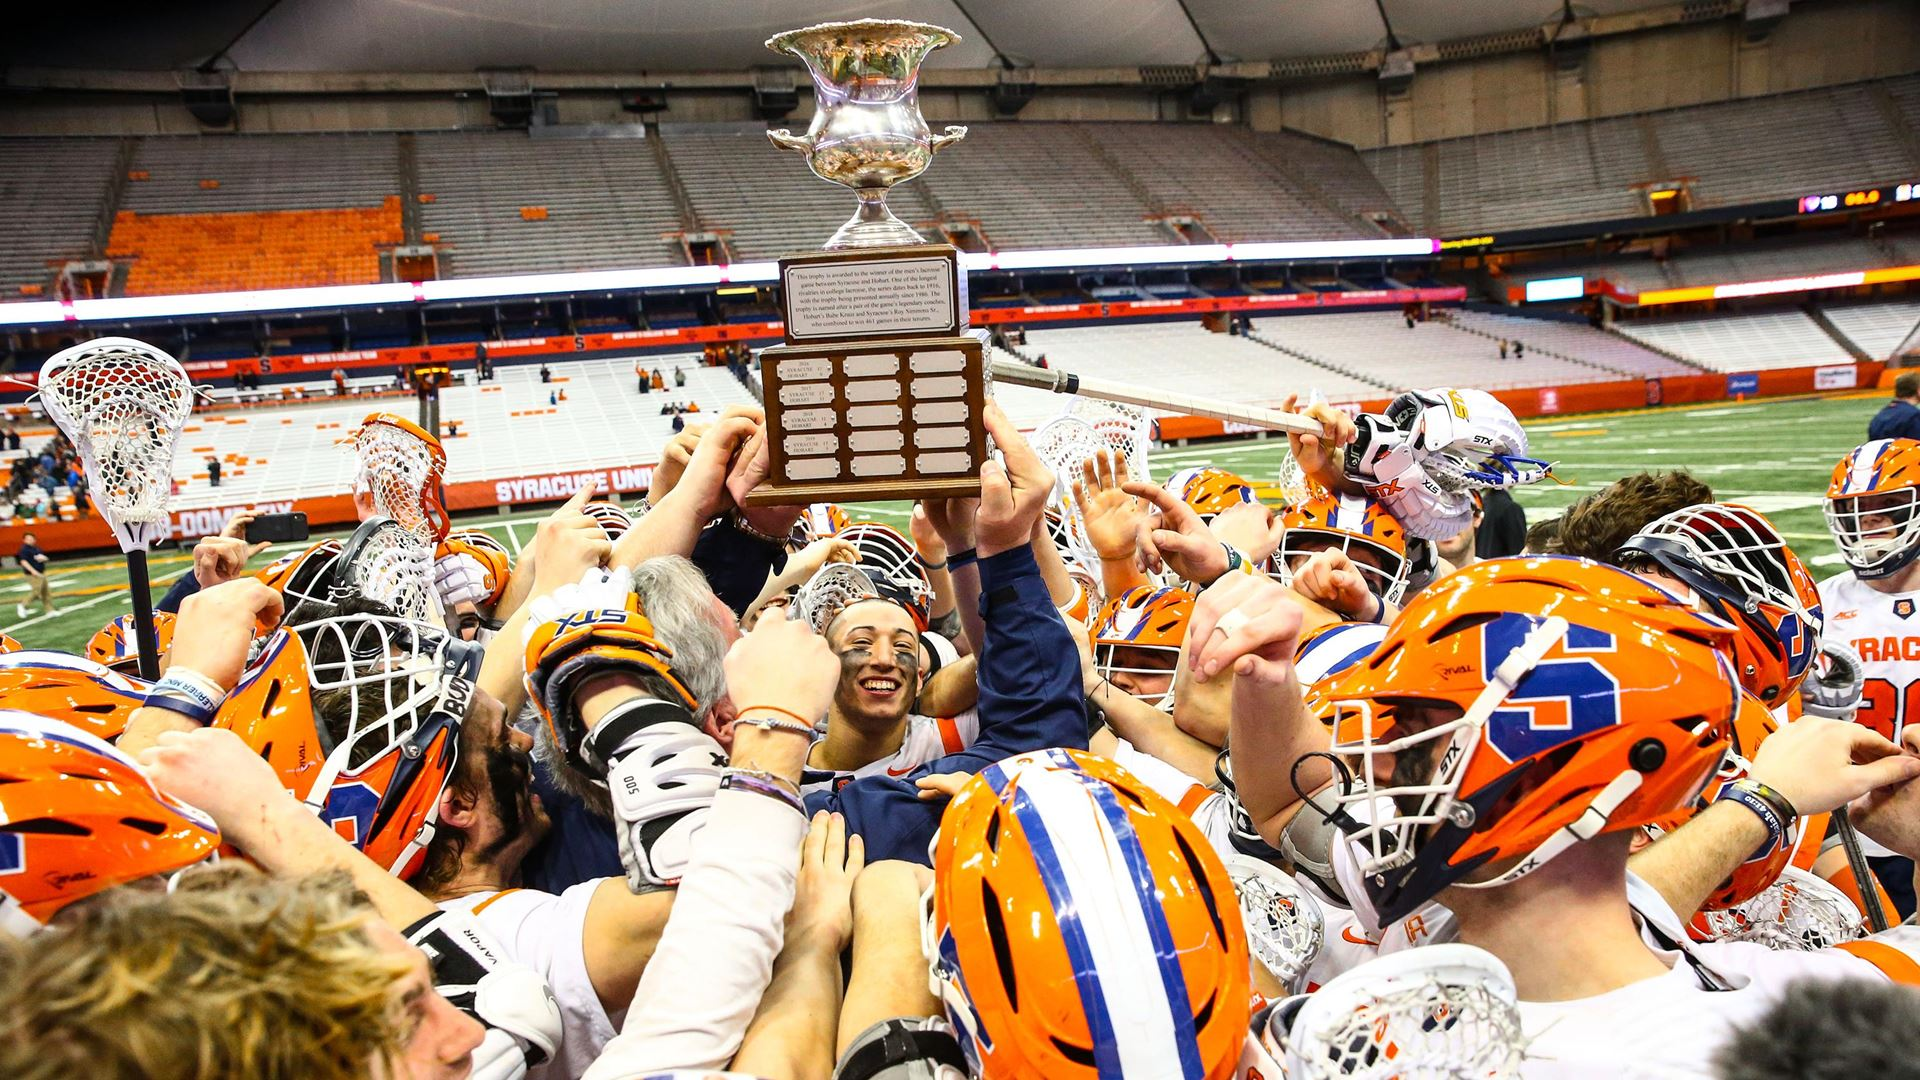 ORANGE-HOBART LIVE COVERAGE: Syracuse defeats Hobart 21-13, wins seventh straight Kraus-Simmons Trophy